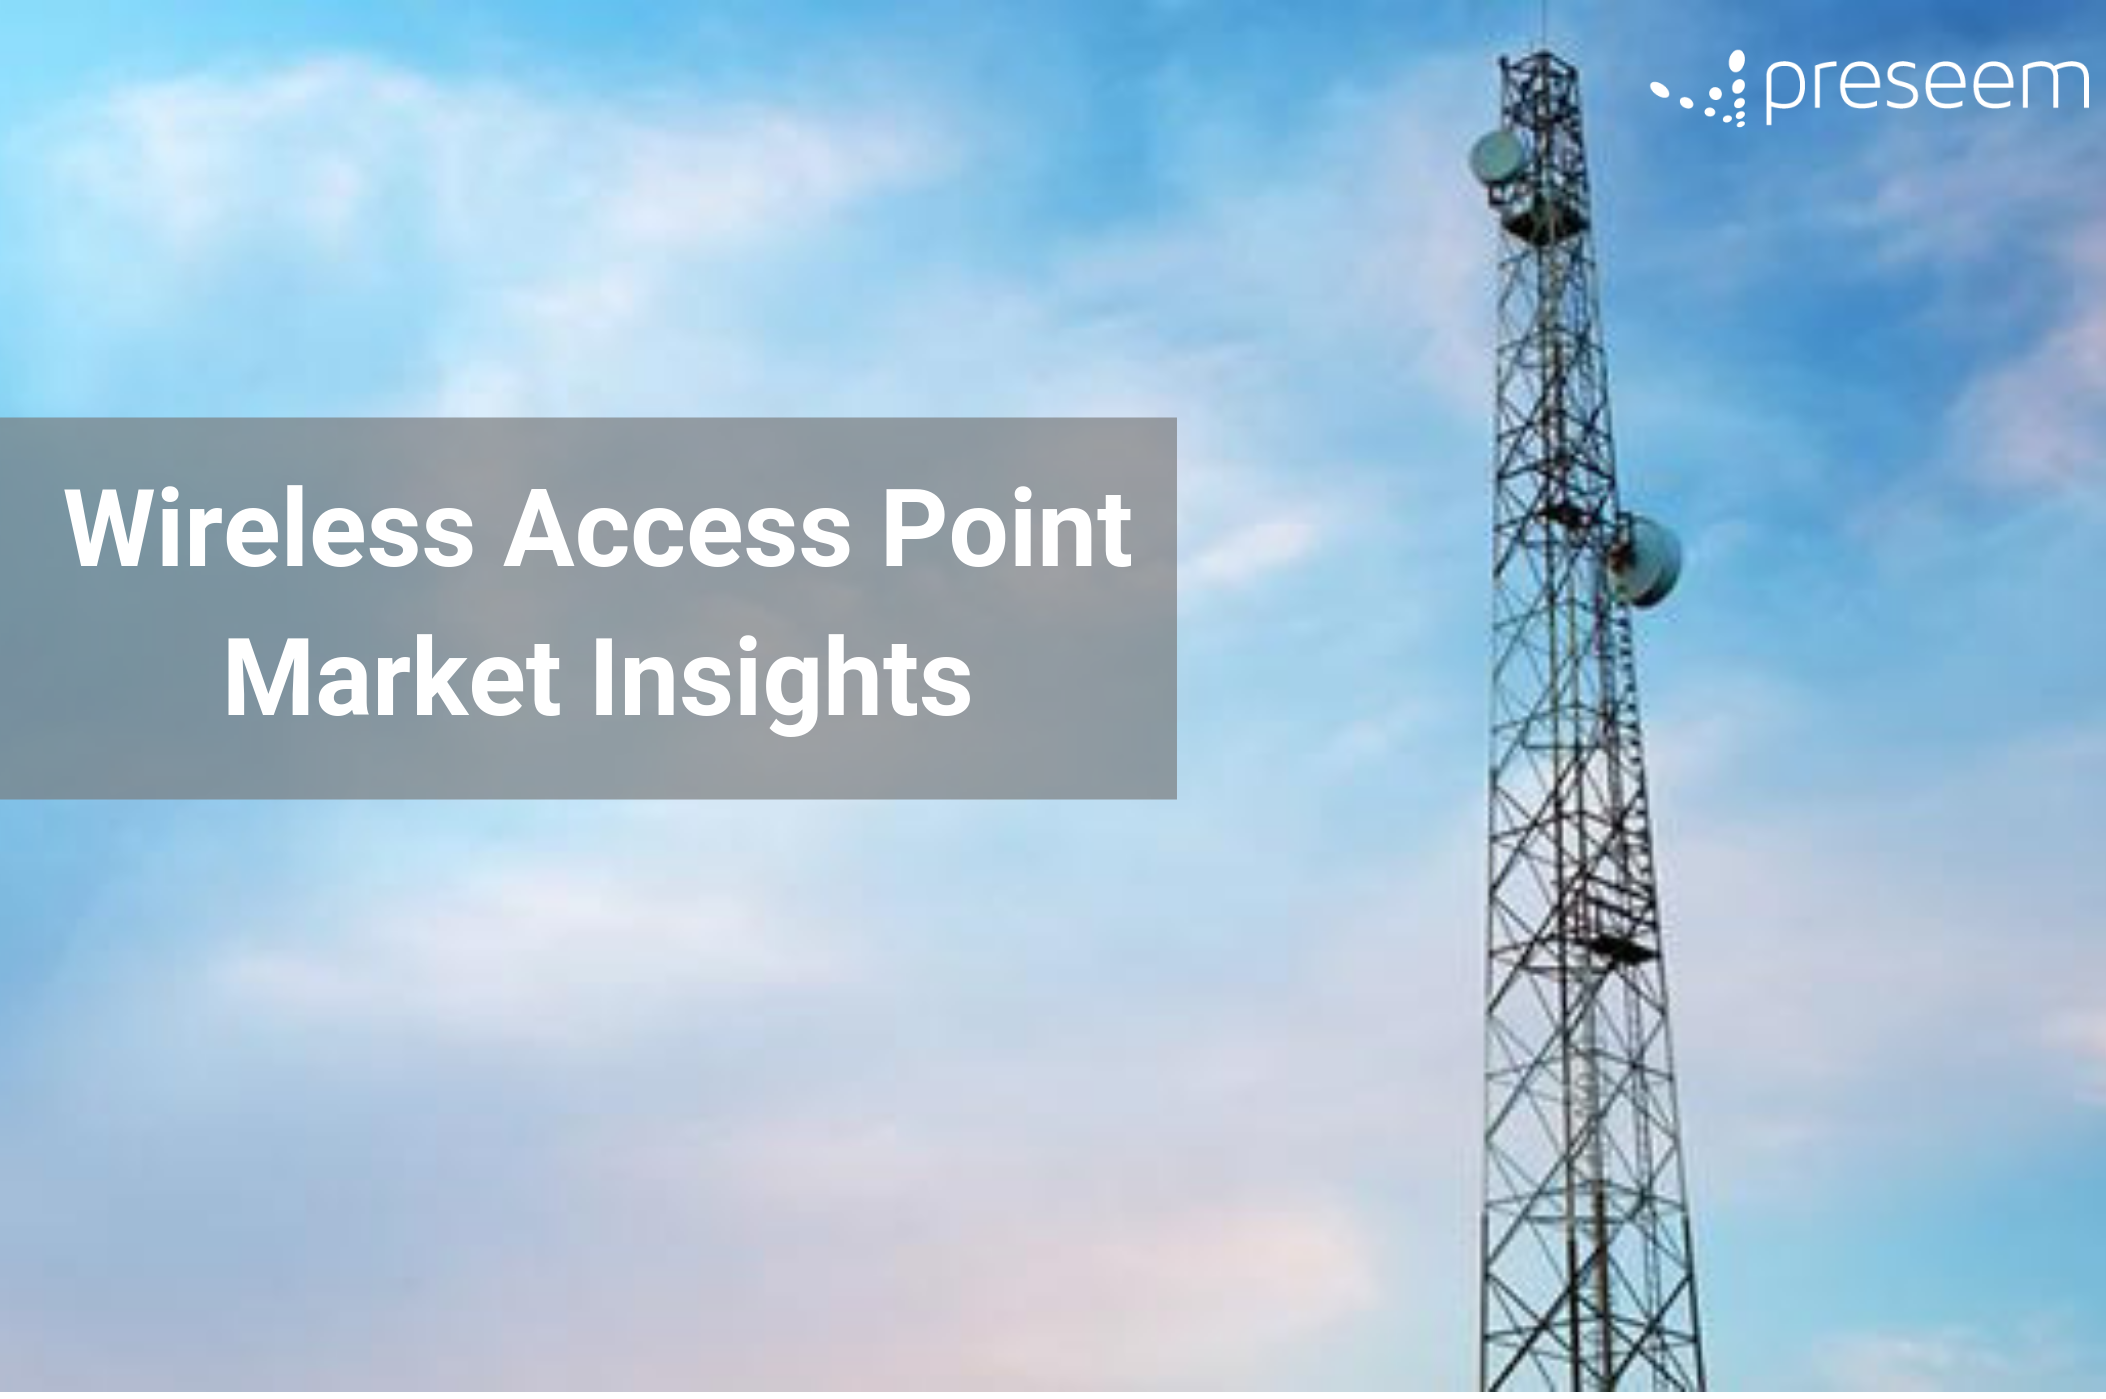 Wireless Access Point Market Preseem